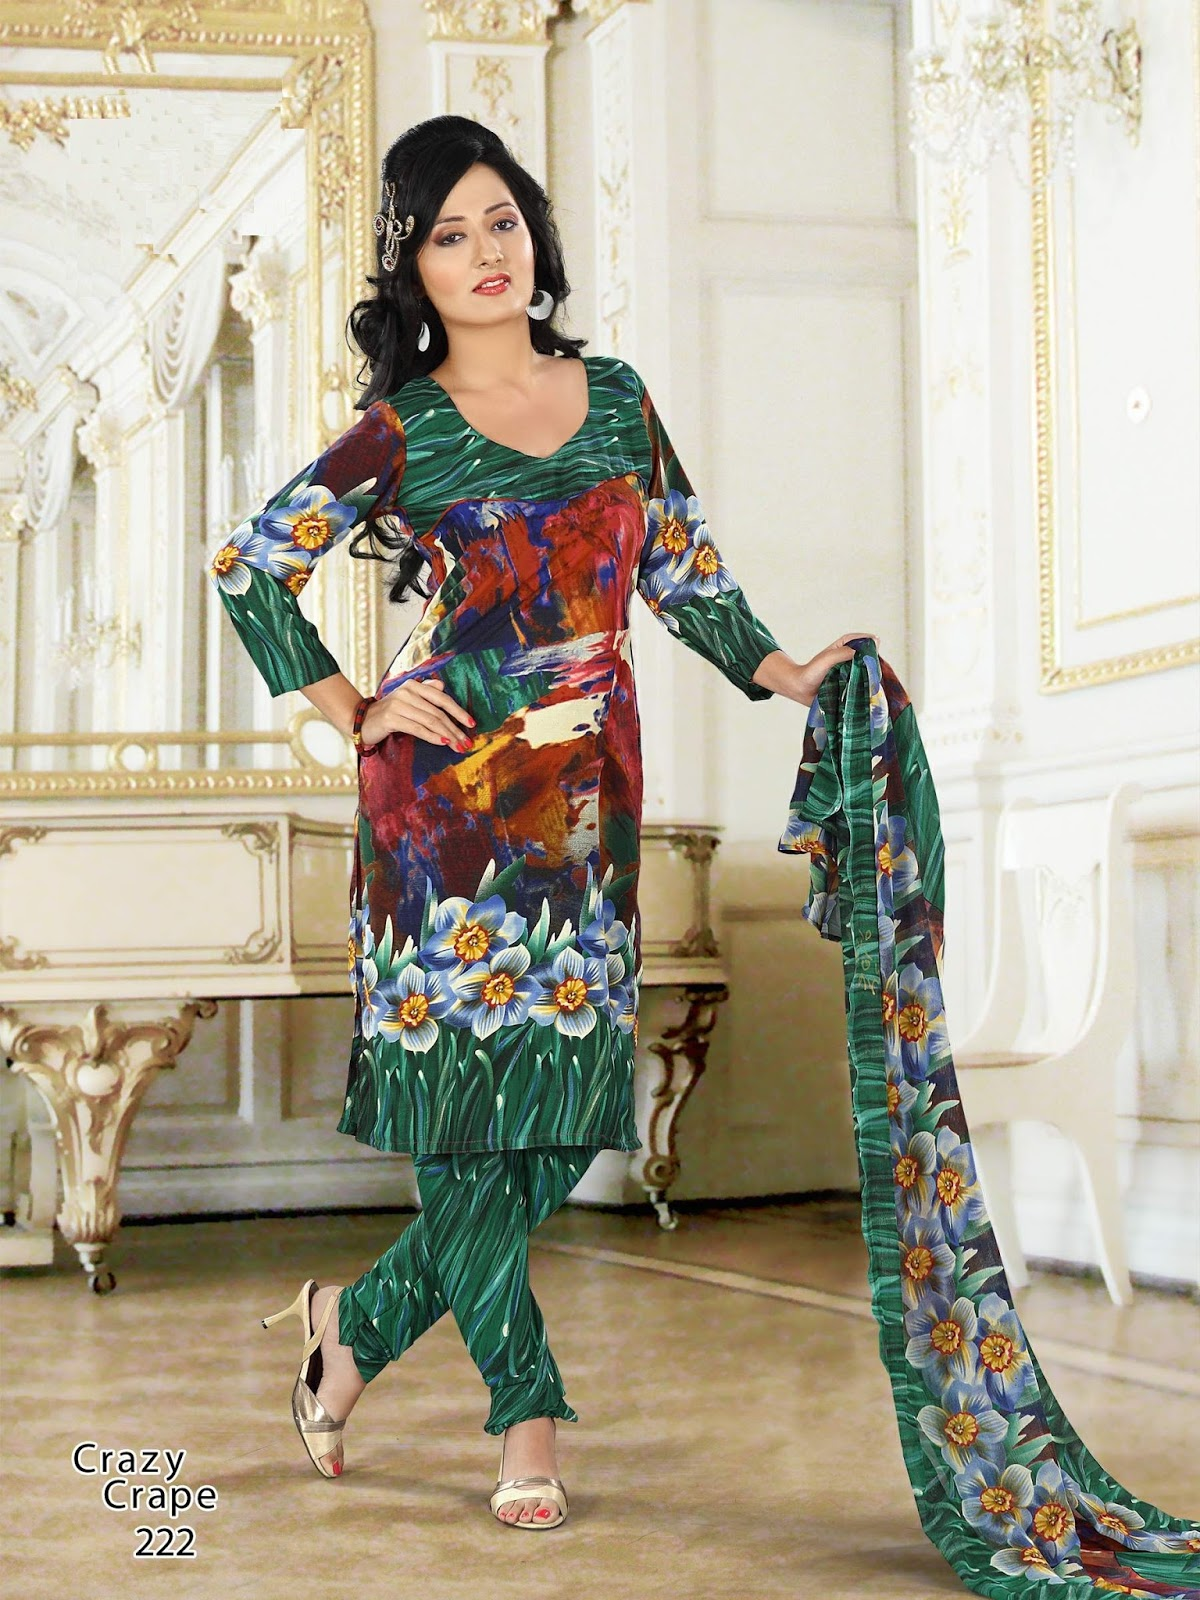 New dress collection for diwali for women - New Dress Collection For Diwali For Women 47